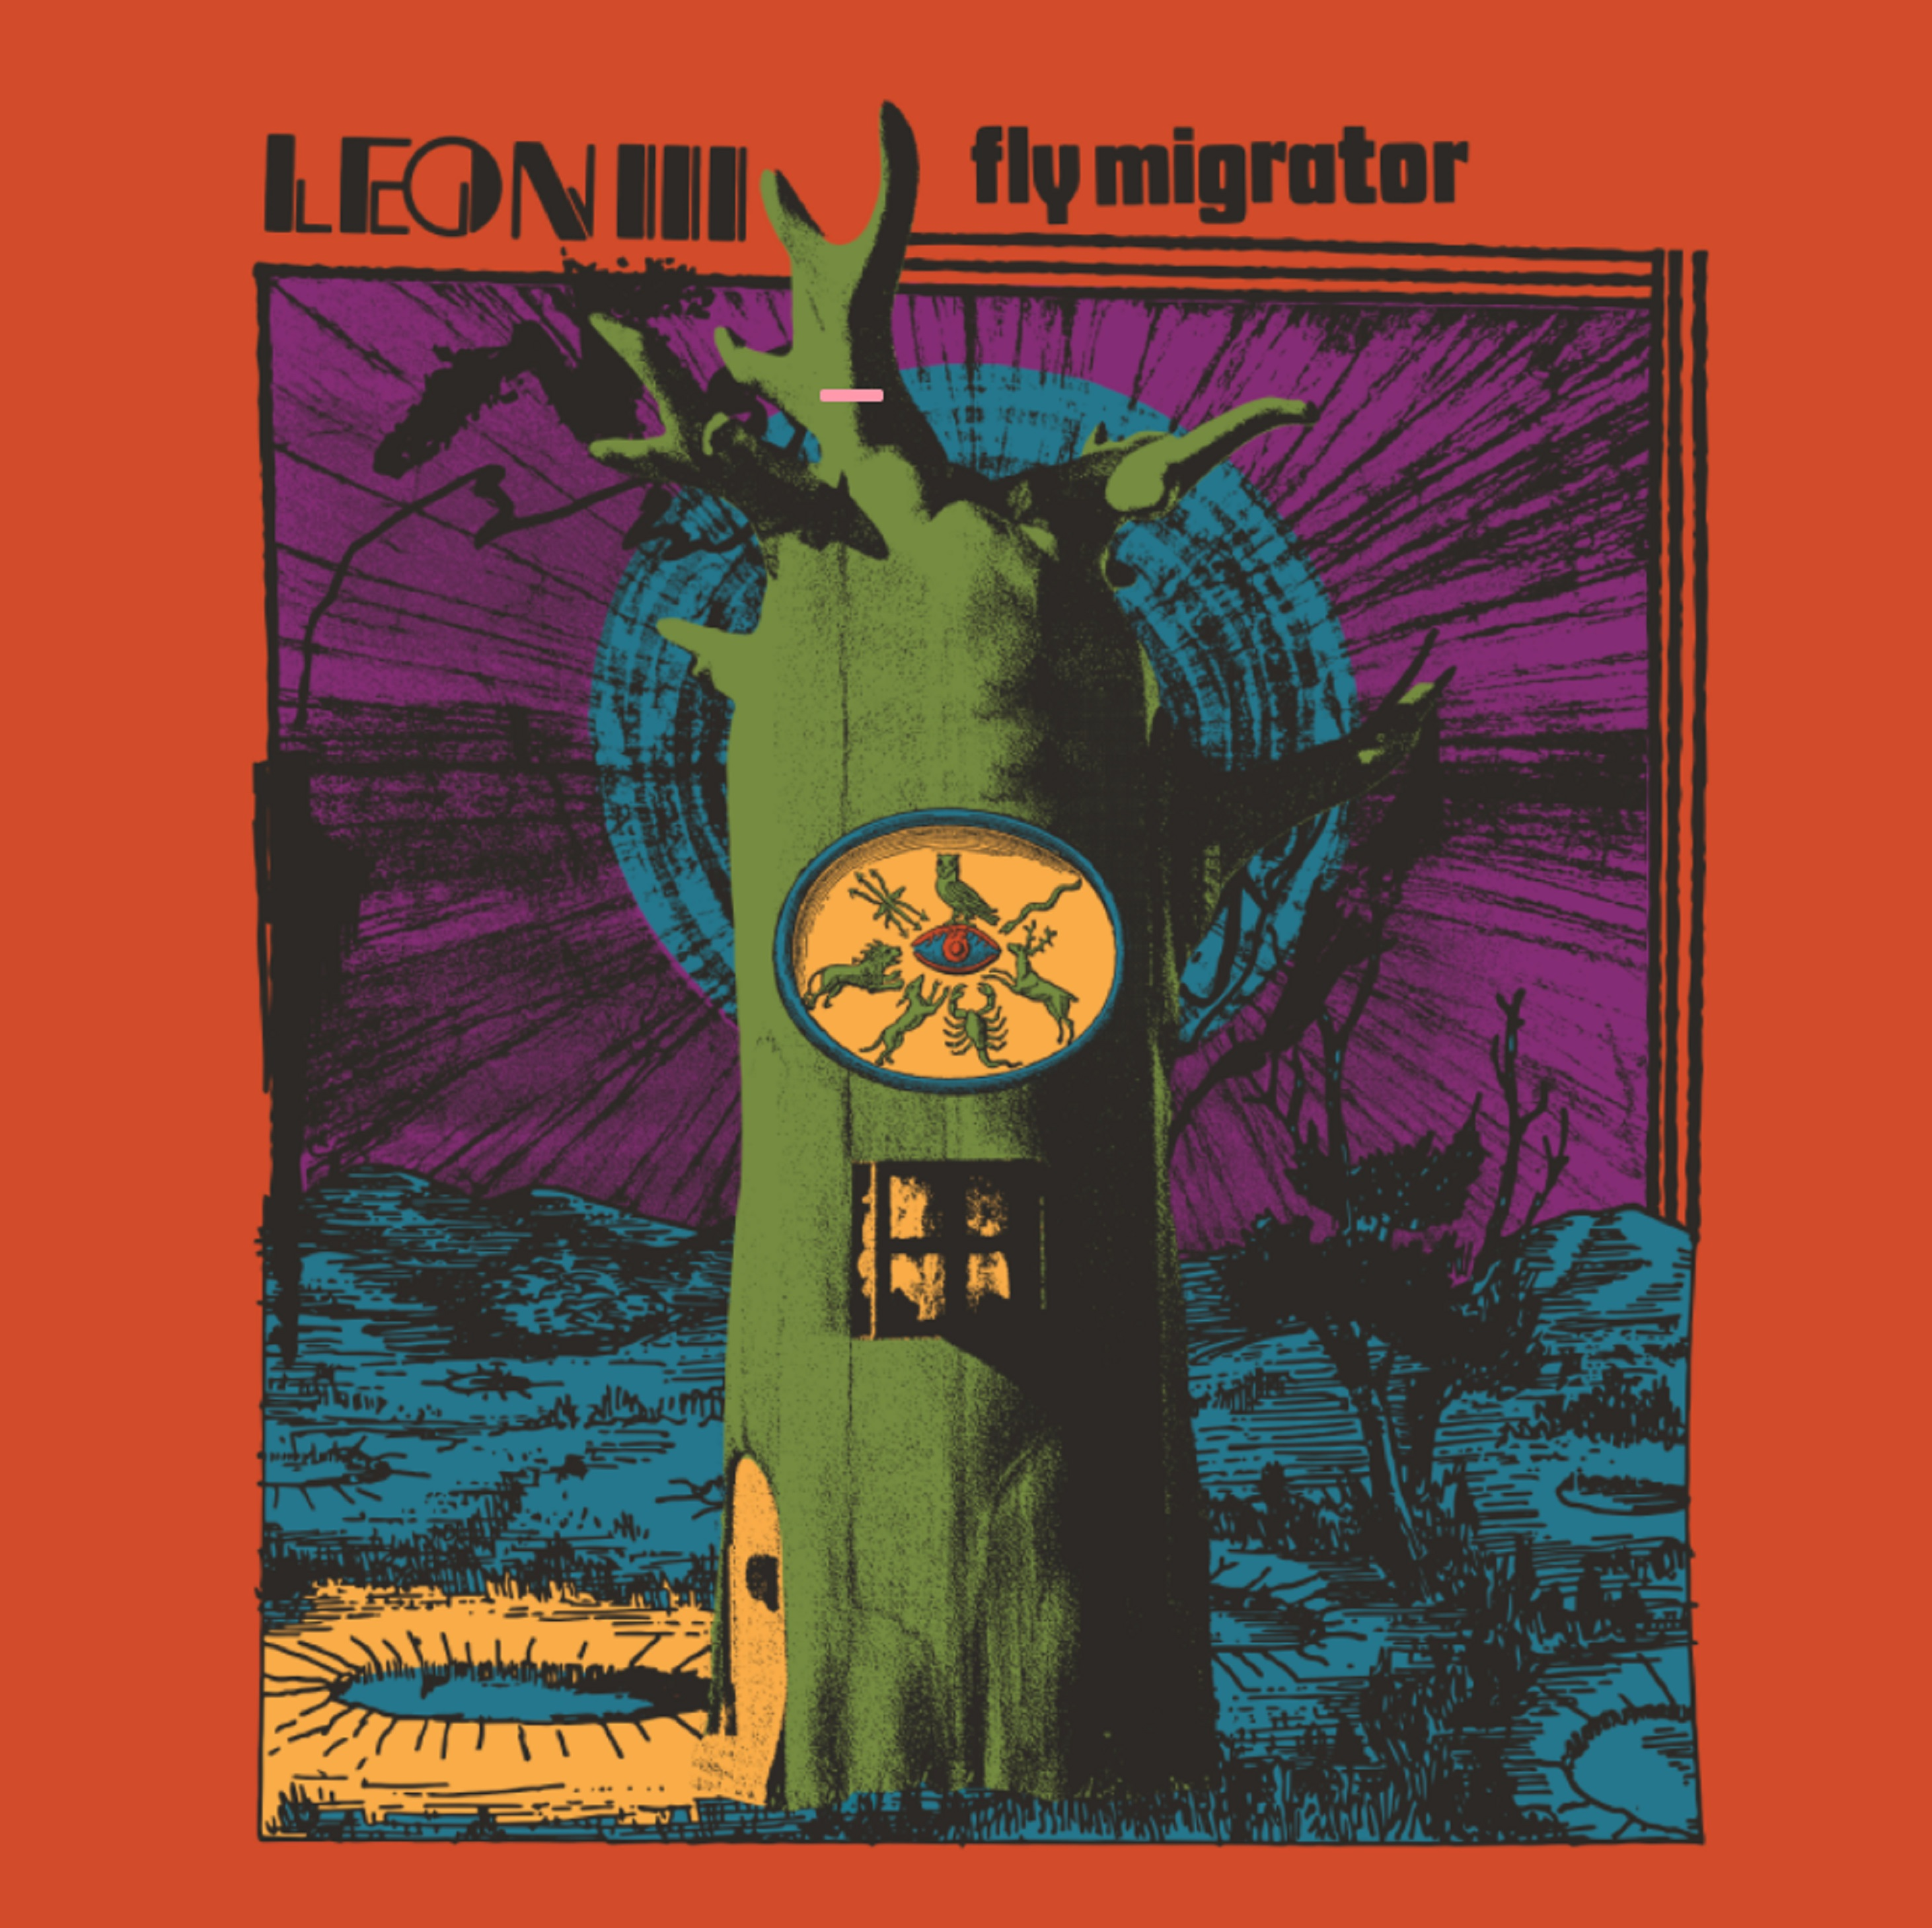 """Fly Migrator"" is a psychotropic rock experience from Leon III"